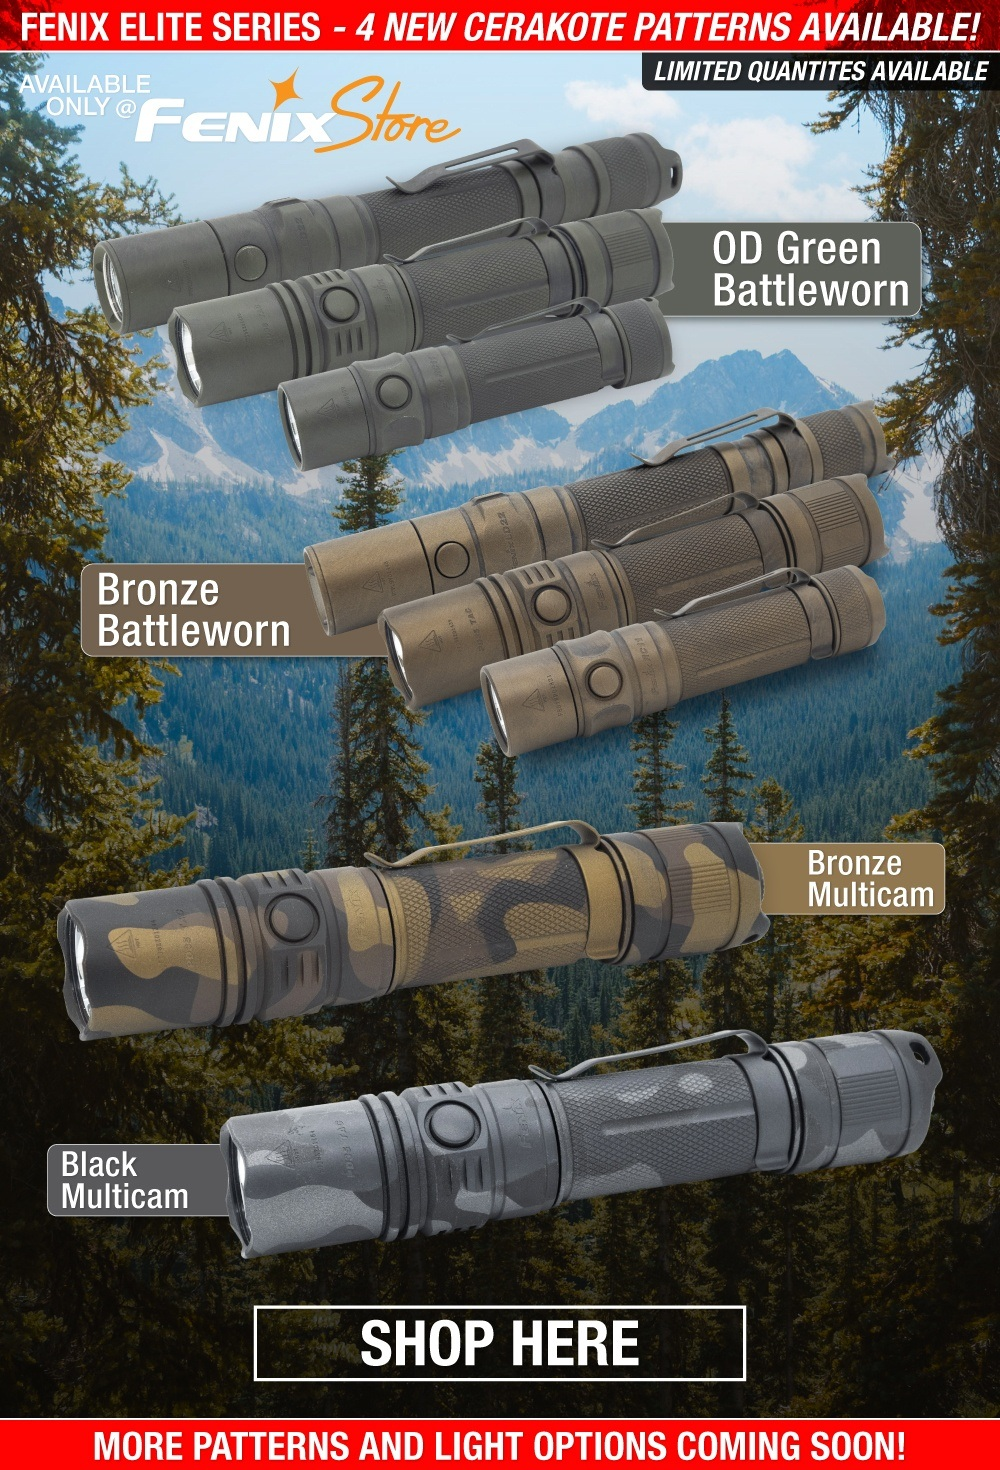 Fenix Elite Series LED Tactical Flashlights